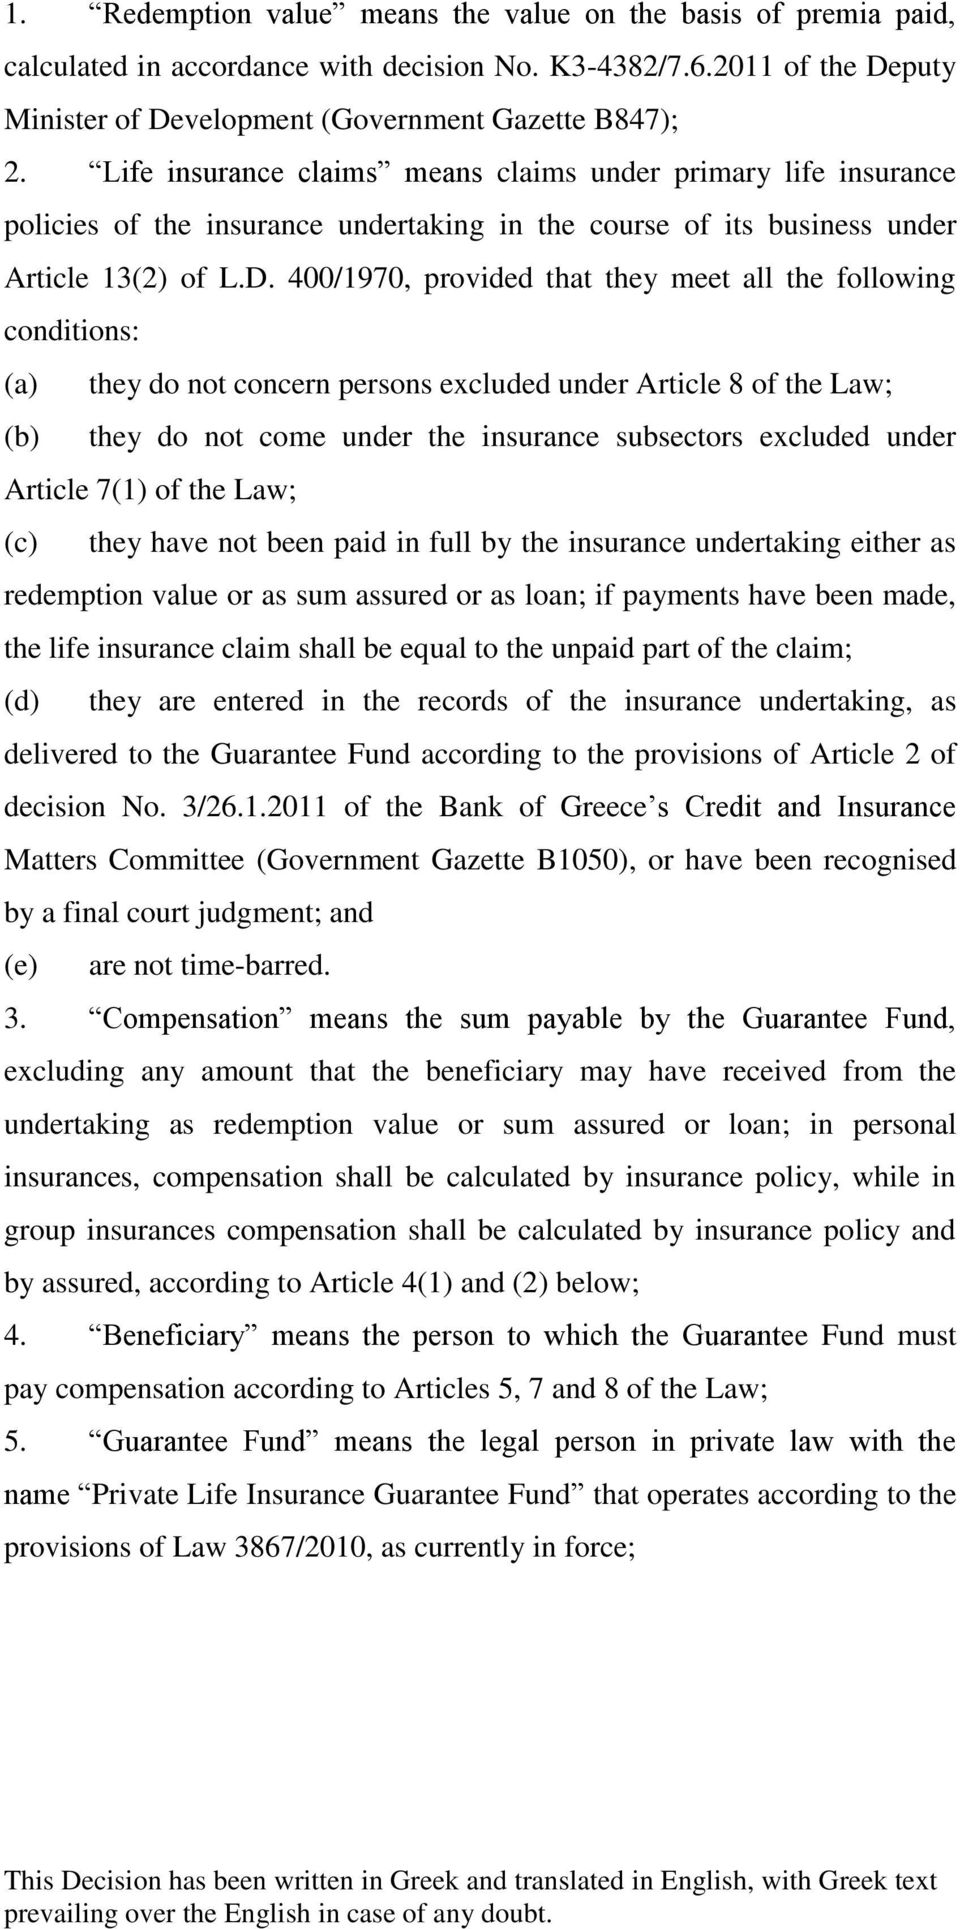 400/1970, provided that they meet all the following conditions: (a) they do not concern persons excluded under Article 8 of the Law; (b) they do not come under the insurance subsectors excluded under